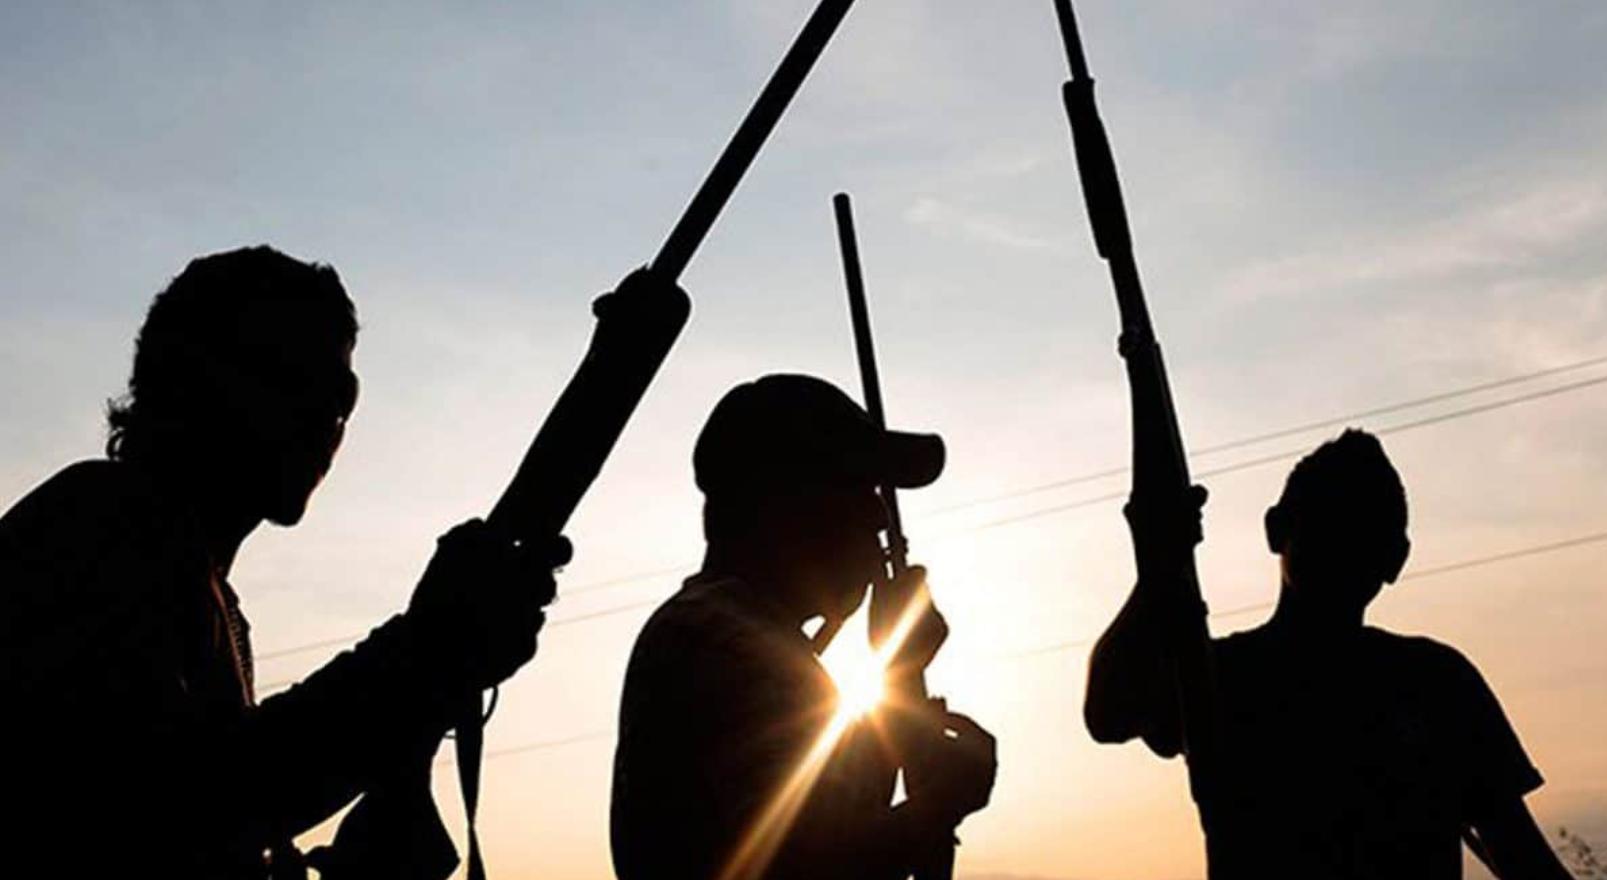 Gunmen invade government offices in Nasarawa, cart away rifle and other valuables